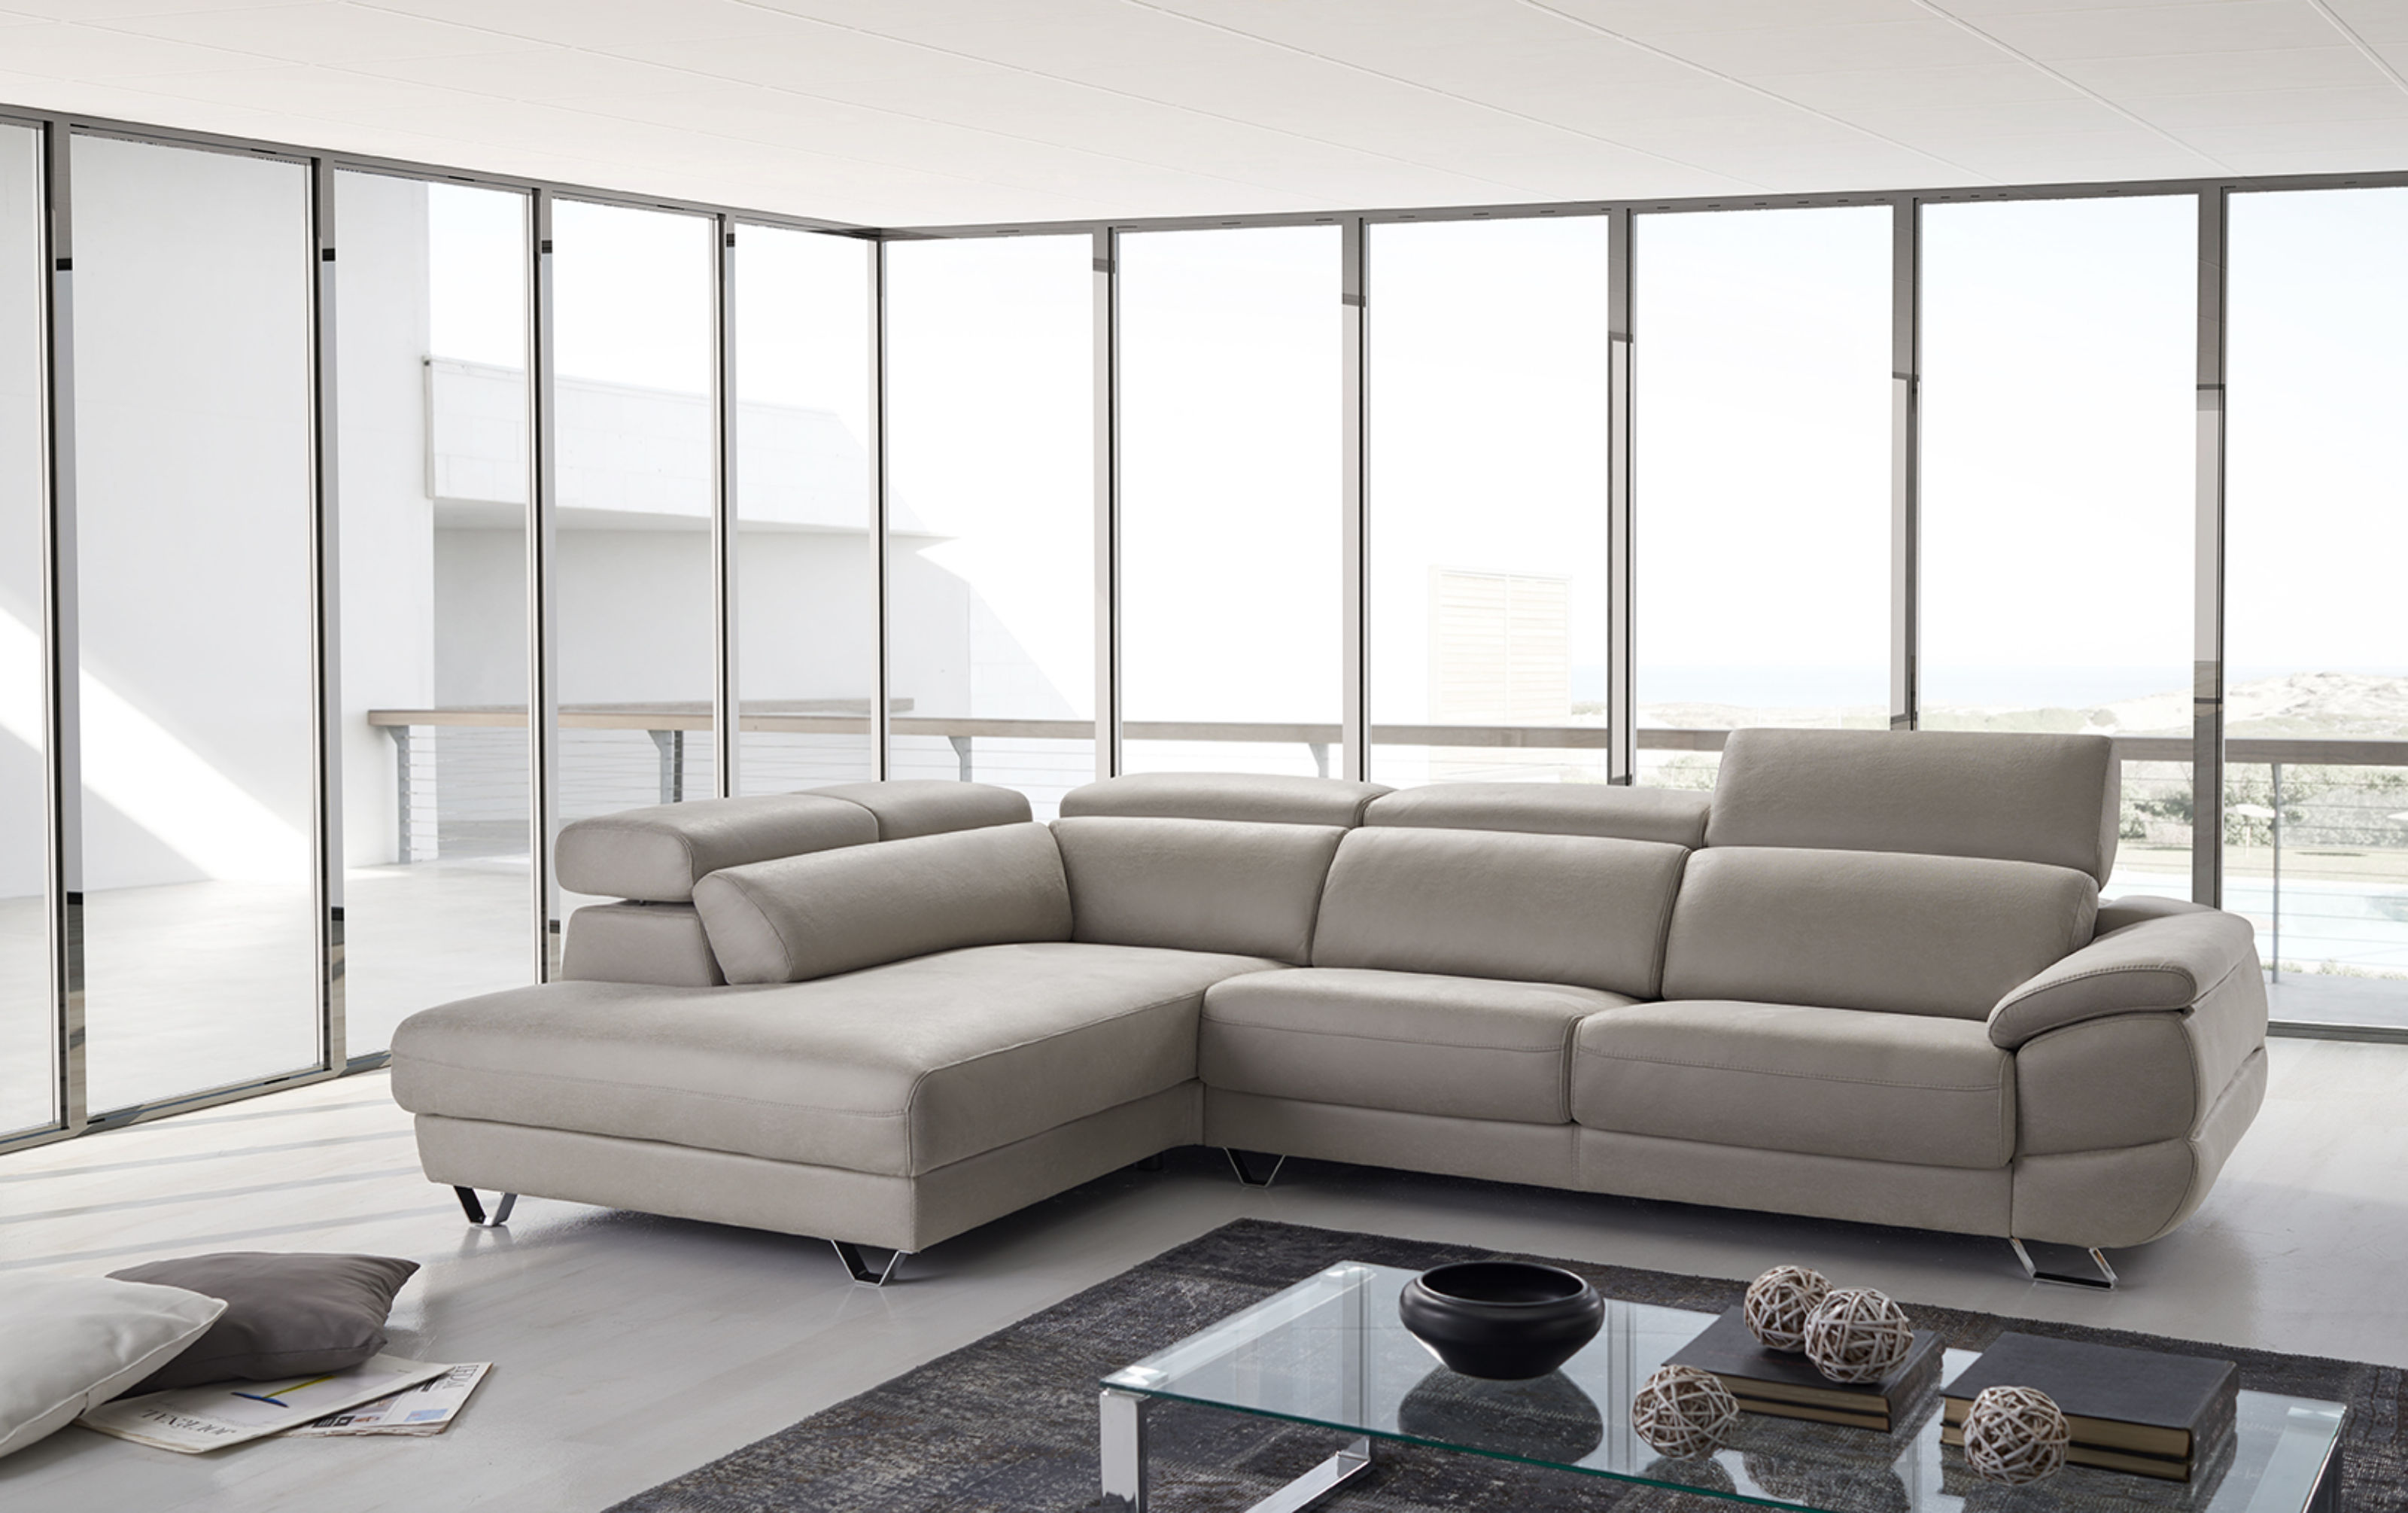 Take a Look at These Awesome Italian Corner Sofas Galleries ...